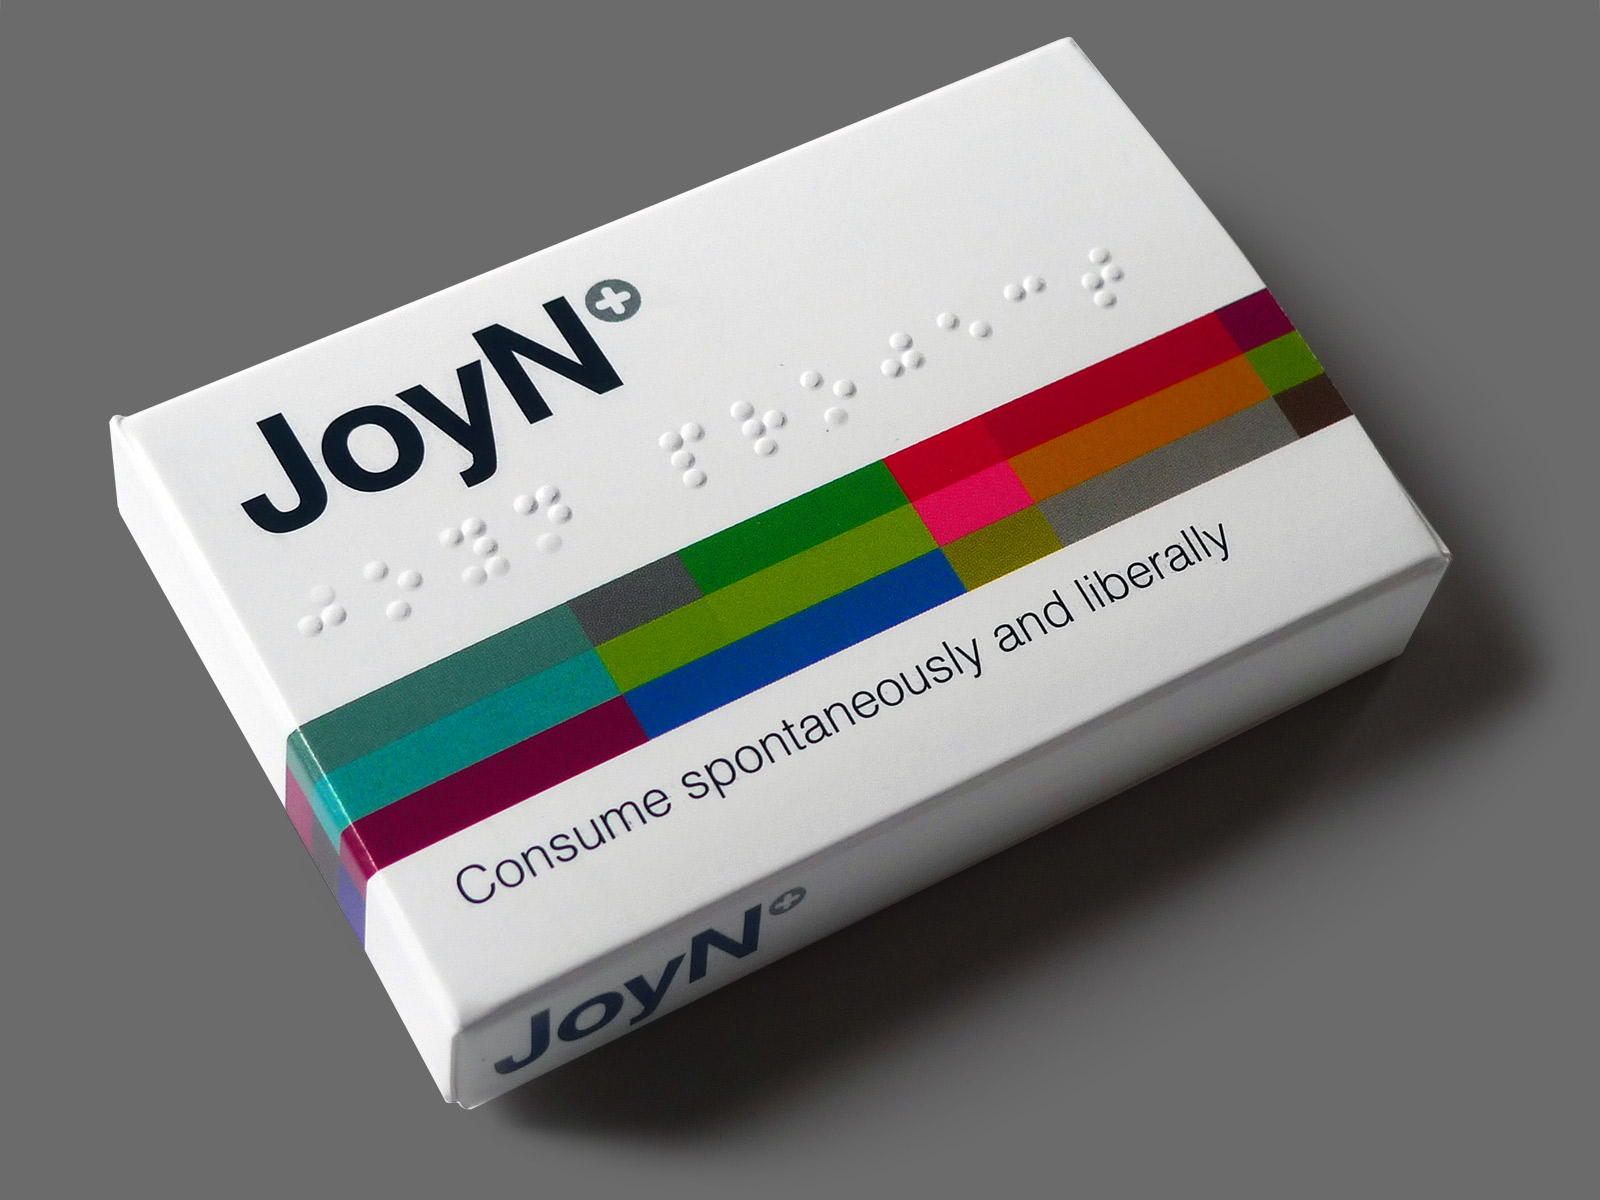 JoyN+  October 2016  JoyN+ was conceived by Joe Magee and subsequently funded by Barnwood Trust as a pilot project at a GPs' surgery in Gloucestershire. Working closely with Dursley GP Dr Simon Opher OBE and staff at his surgery, the aim is to help effectively implement 'social prescribing'.  Social prescribing is a way of linking people to groups and activities where they live that they might benefit from. Instead of prescribing medication doctors are prescribing connections to things such as art groups, gardening clubs and book groups. Research has shown that this approach is beneficial to people's physical and mental wellbeing.  JoyN+ takes the form of a pill packet that can be given to patients by the GP, or taken from the countertop box. Inside are business cards with information about individual local groups.The cards provide both ideas and contact details.  The JoyN+ concept sprung from an arts and health discussion group instigated by Create Gloucestershire.  LINKS  Barnwood Trust   Create Gloucestershire   JoyN+ © Joe Magee 2016